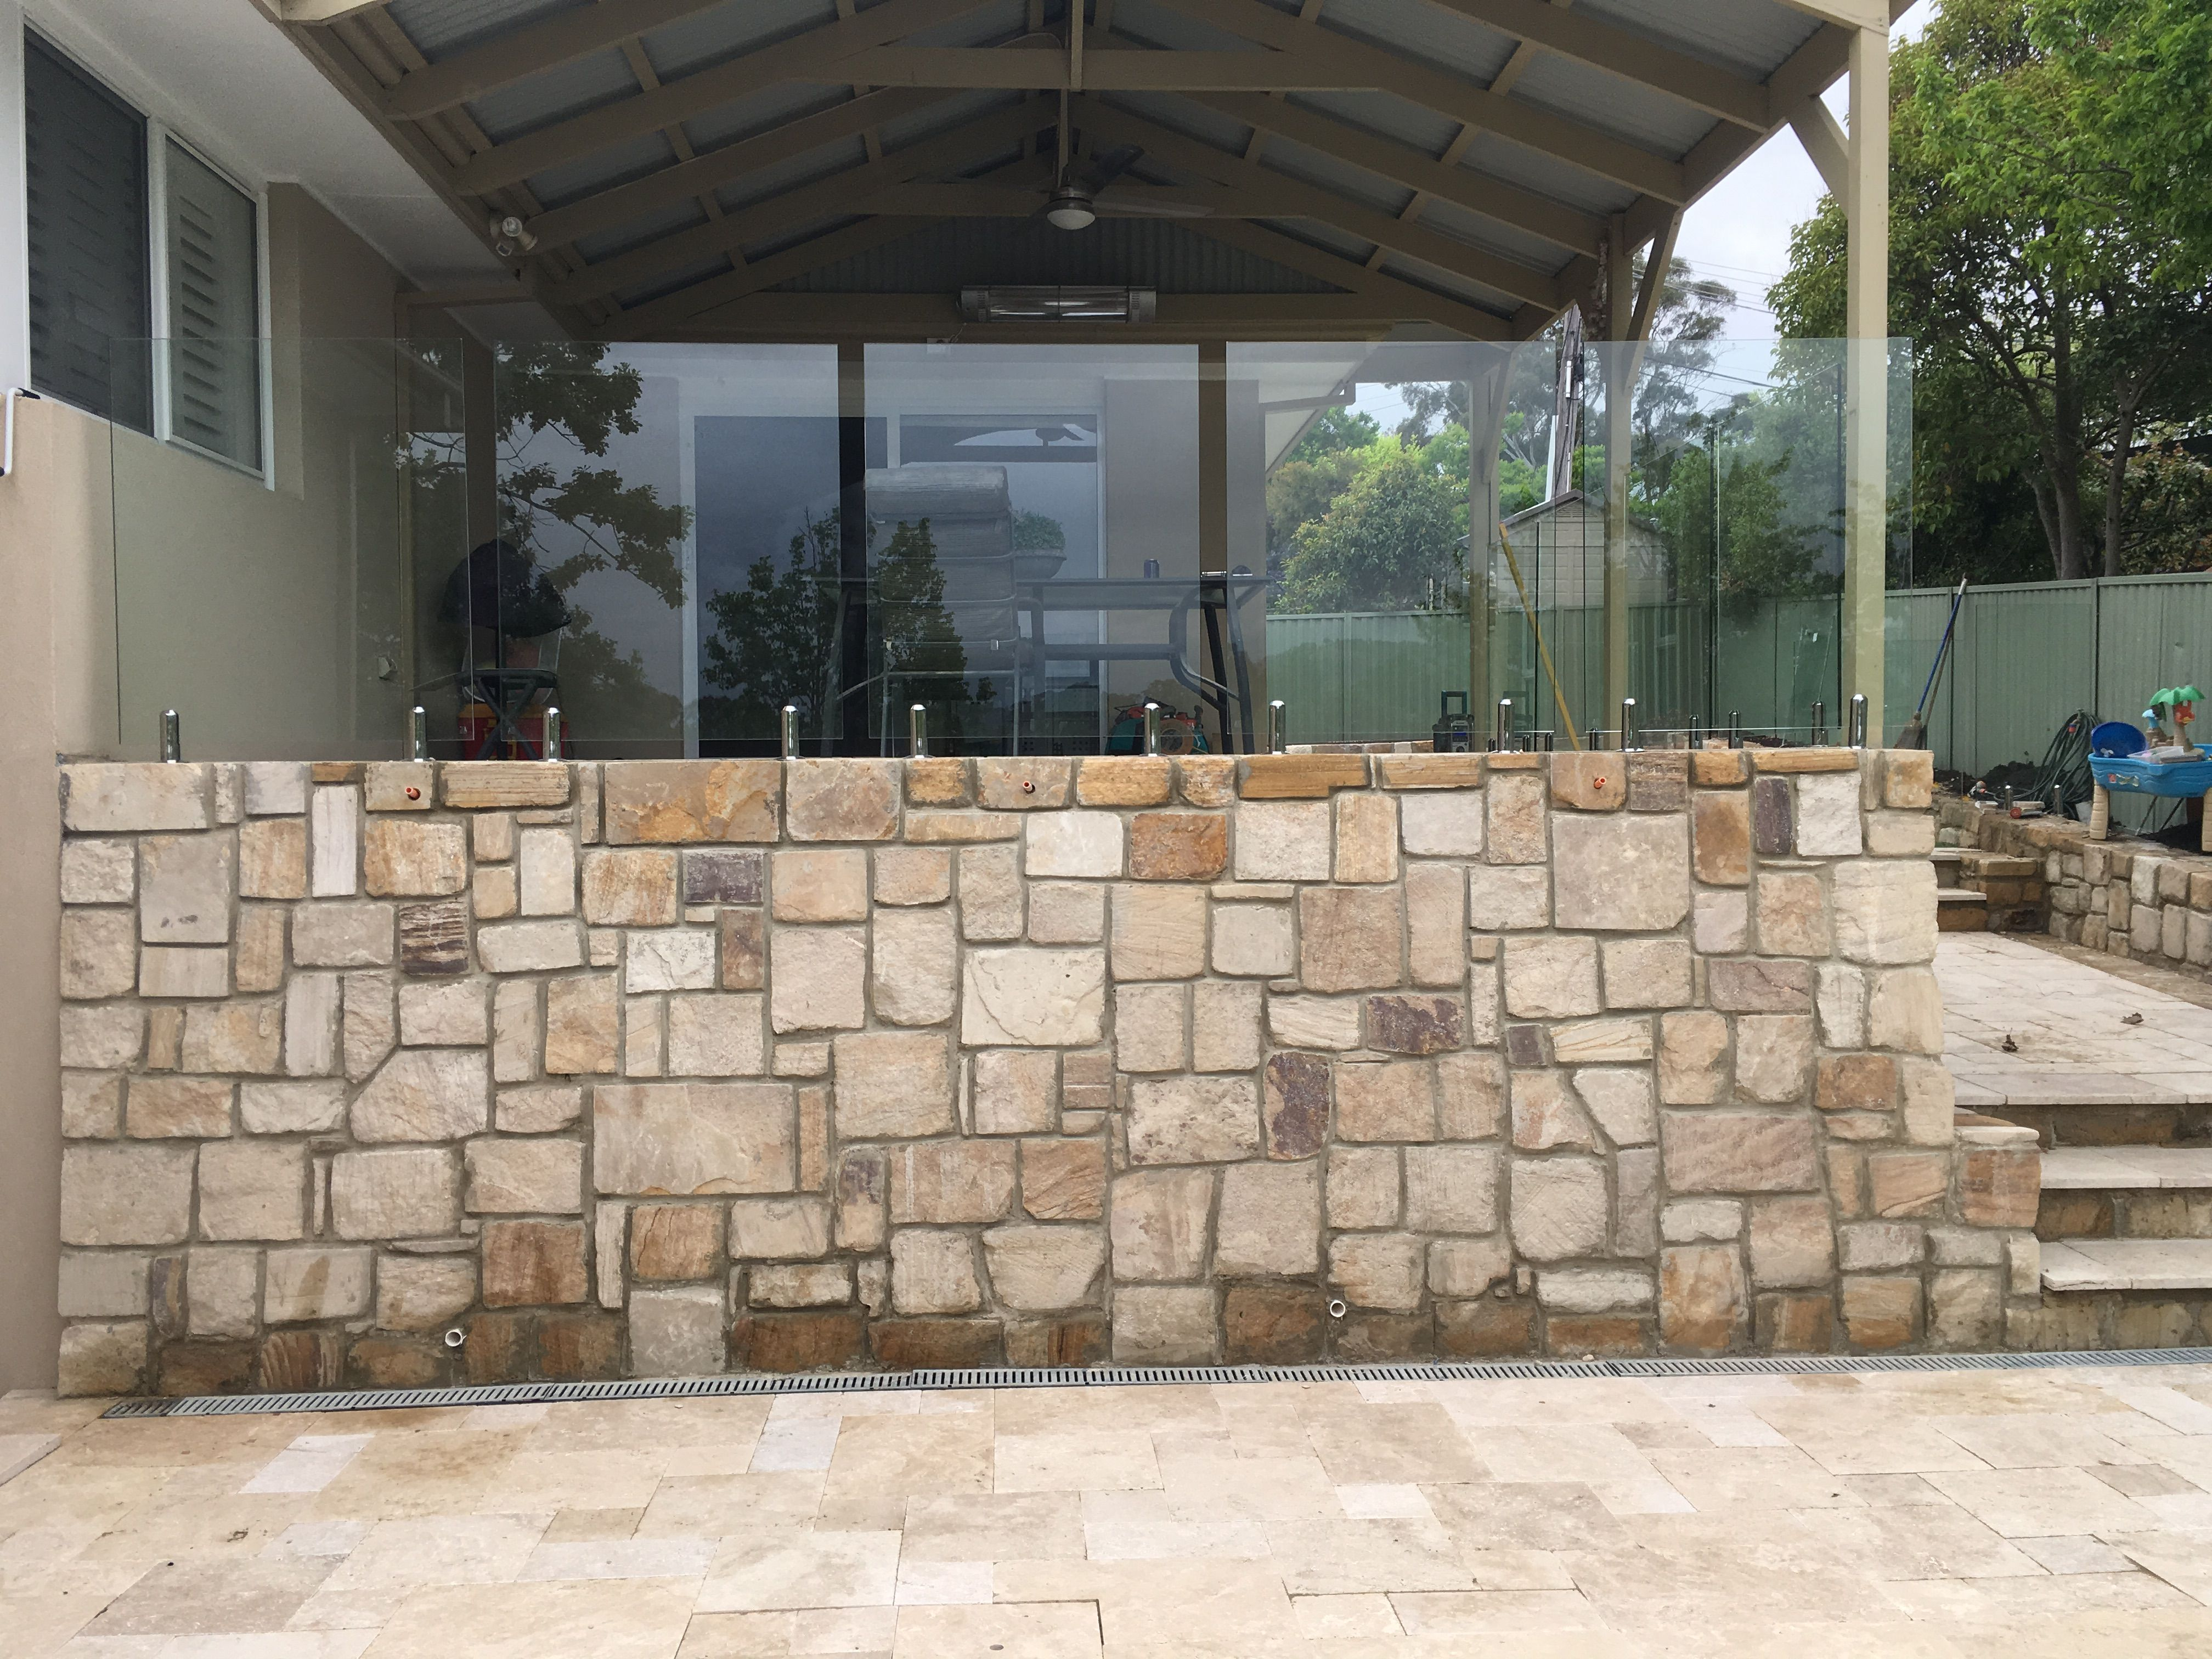 Sandstonewall Sandstone Feature Wall Around A Swimming Pool Landscaping Retaining Walls Glass Fence Retaining Wall